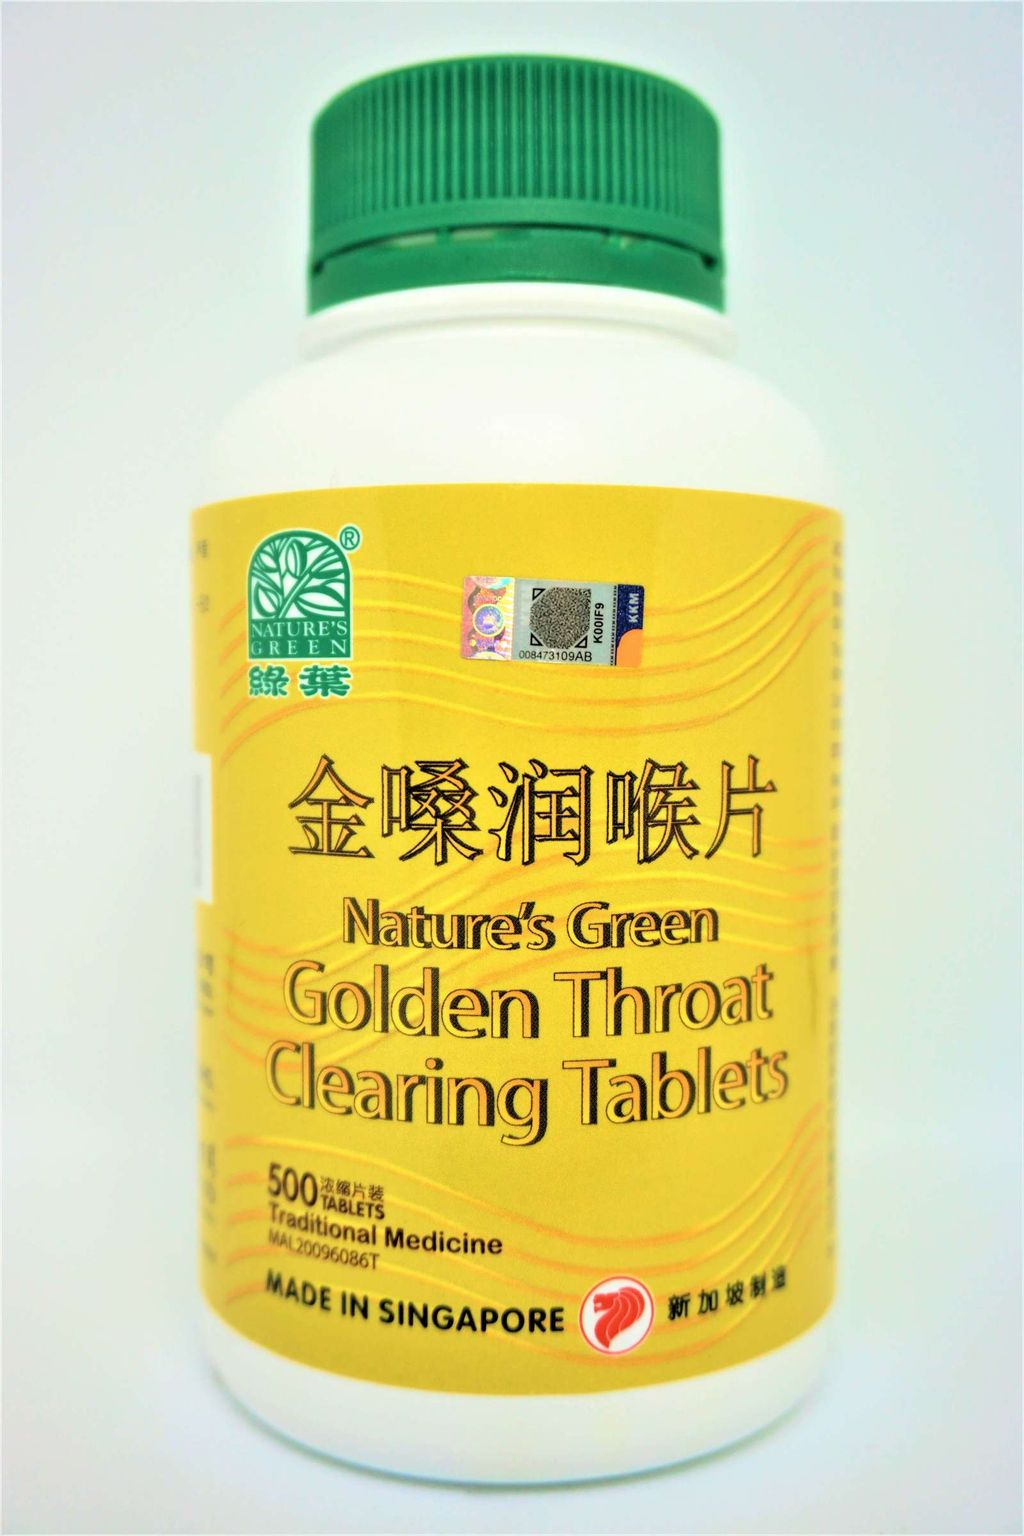 Golden Throat Clearing Tablets.jpg